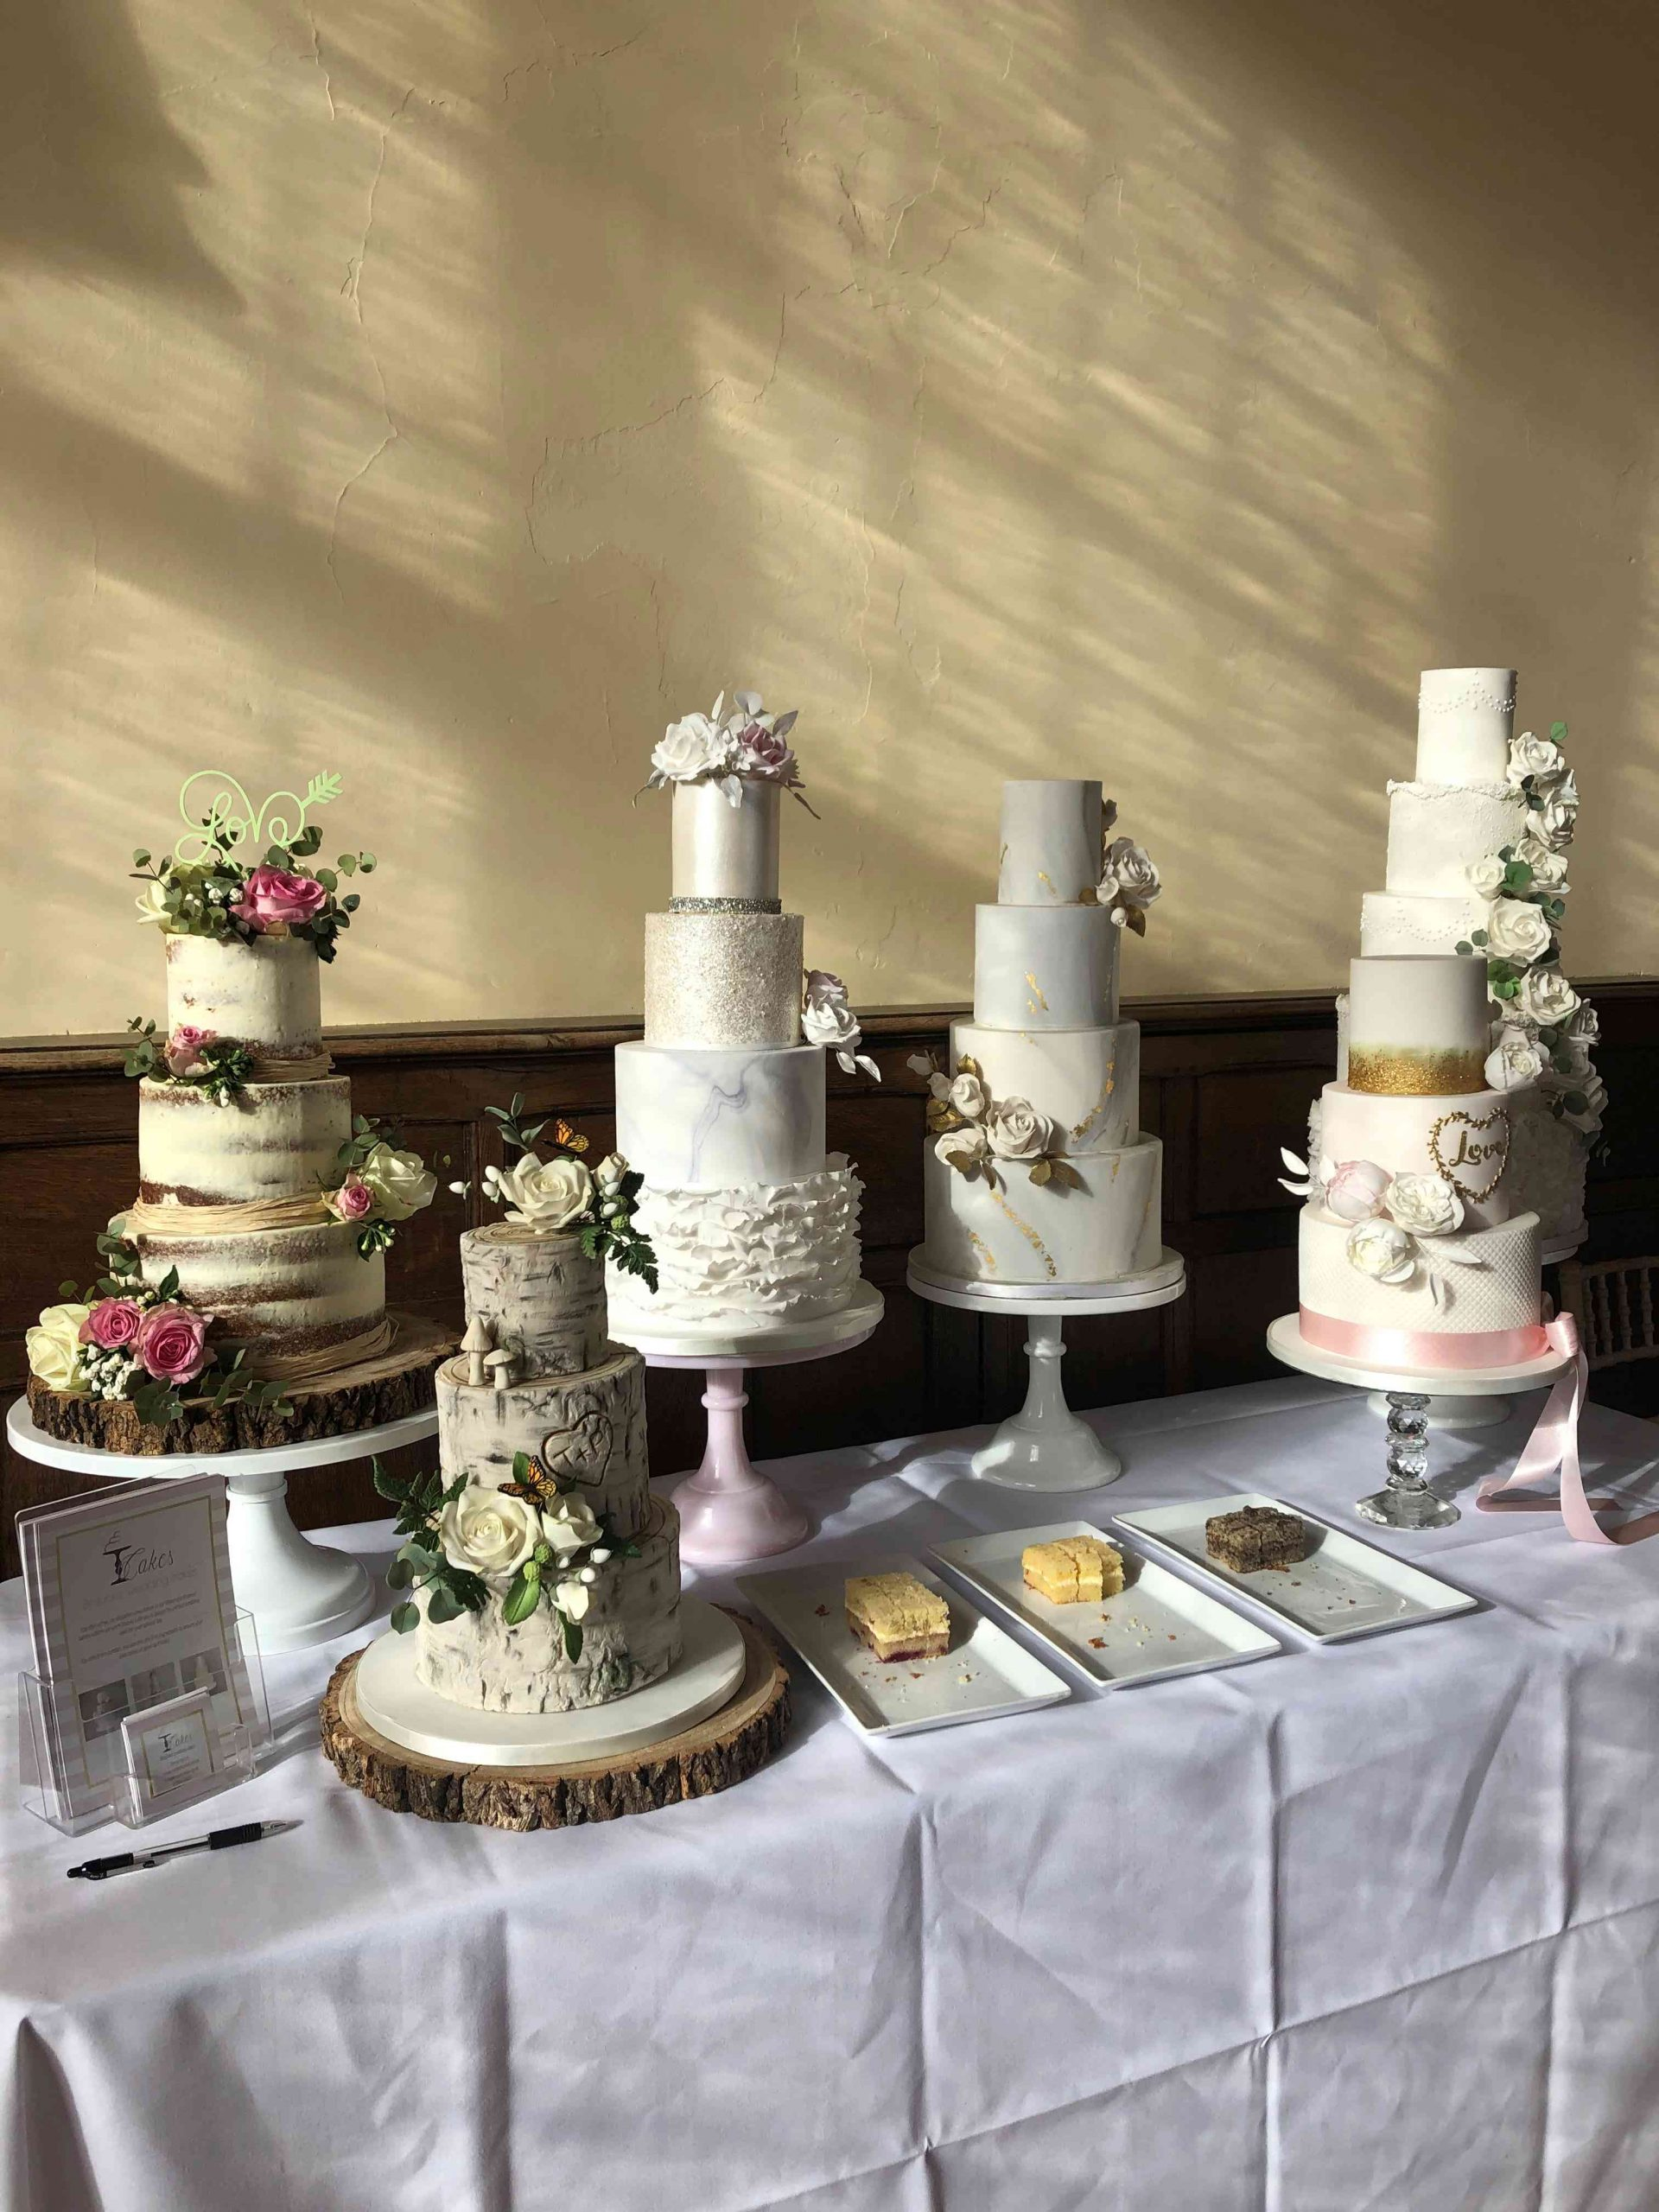 Display of wedding cakes